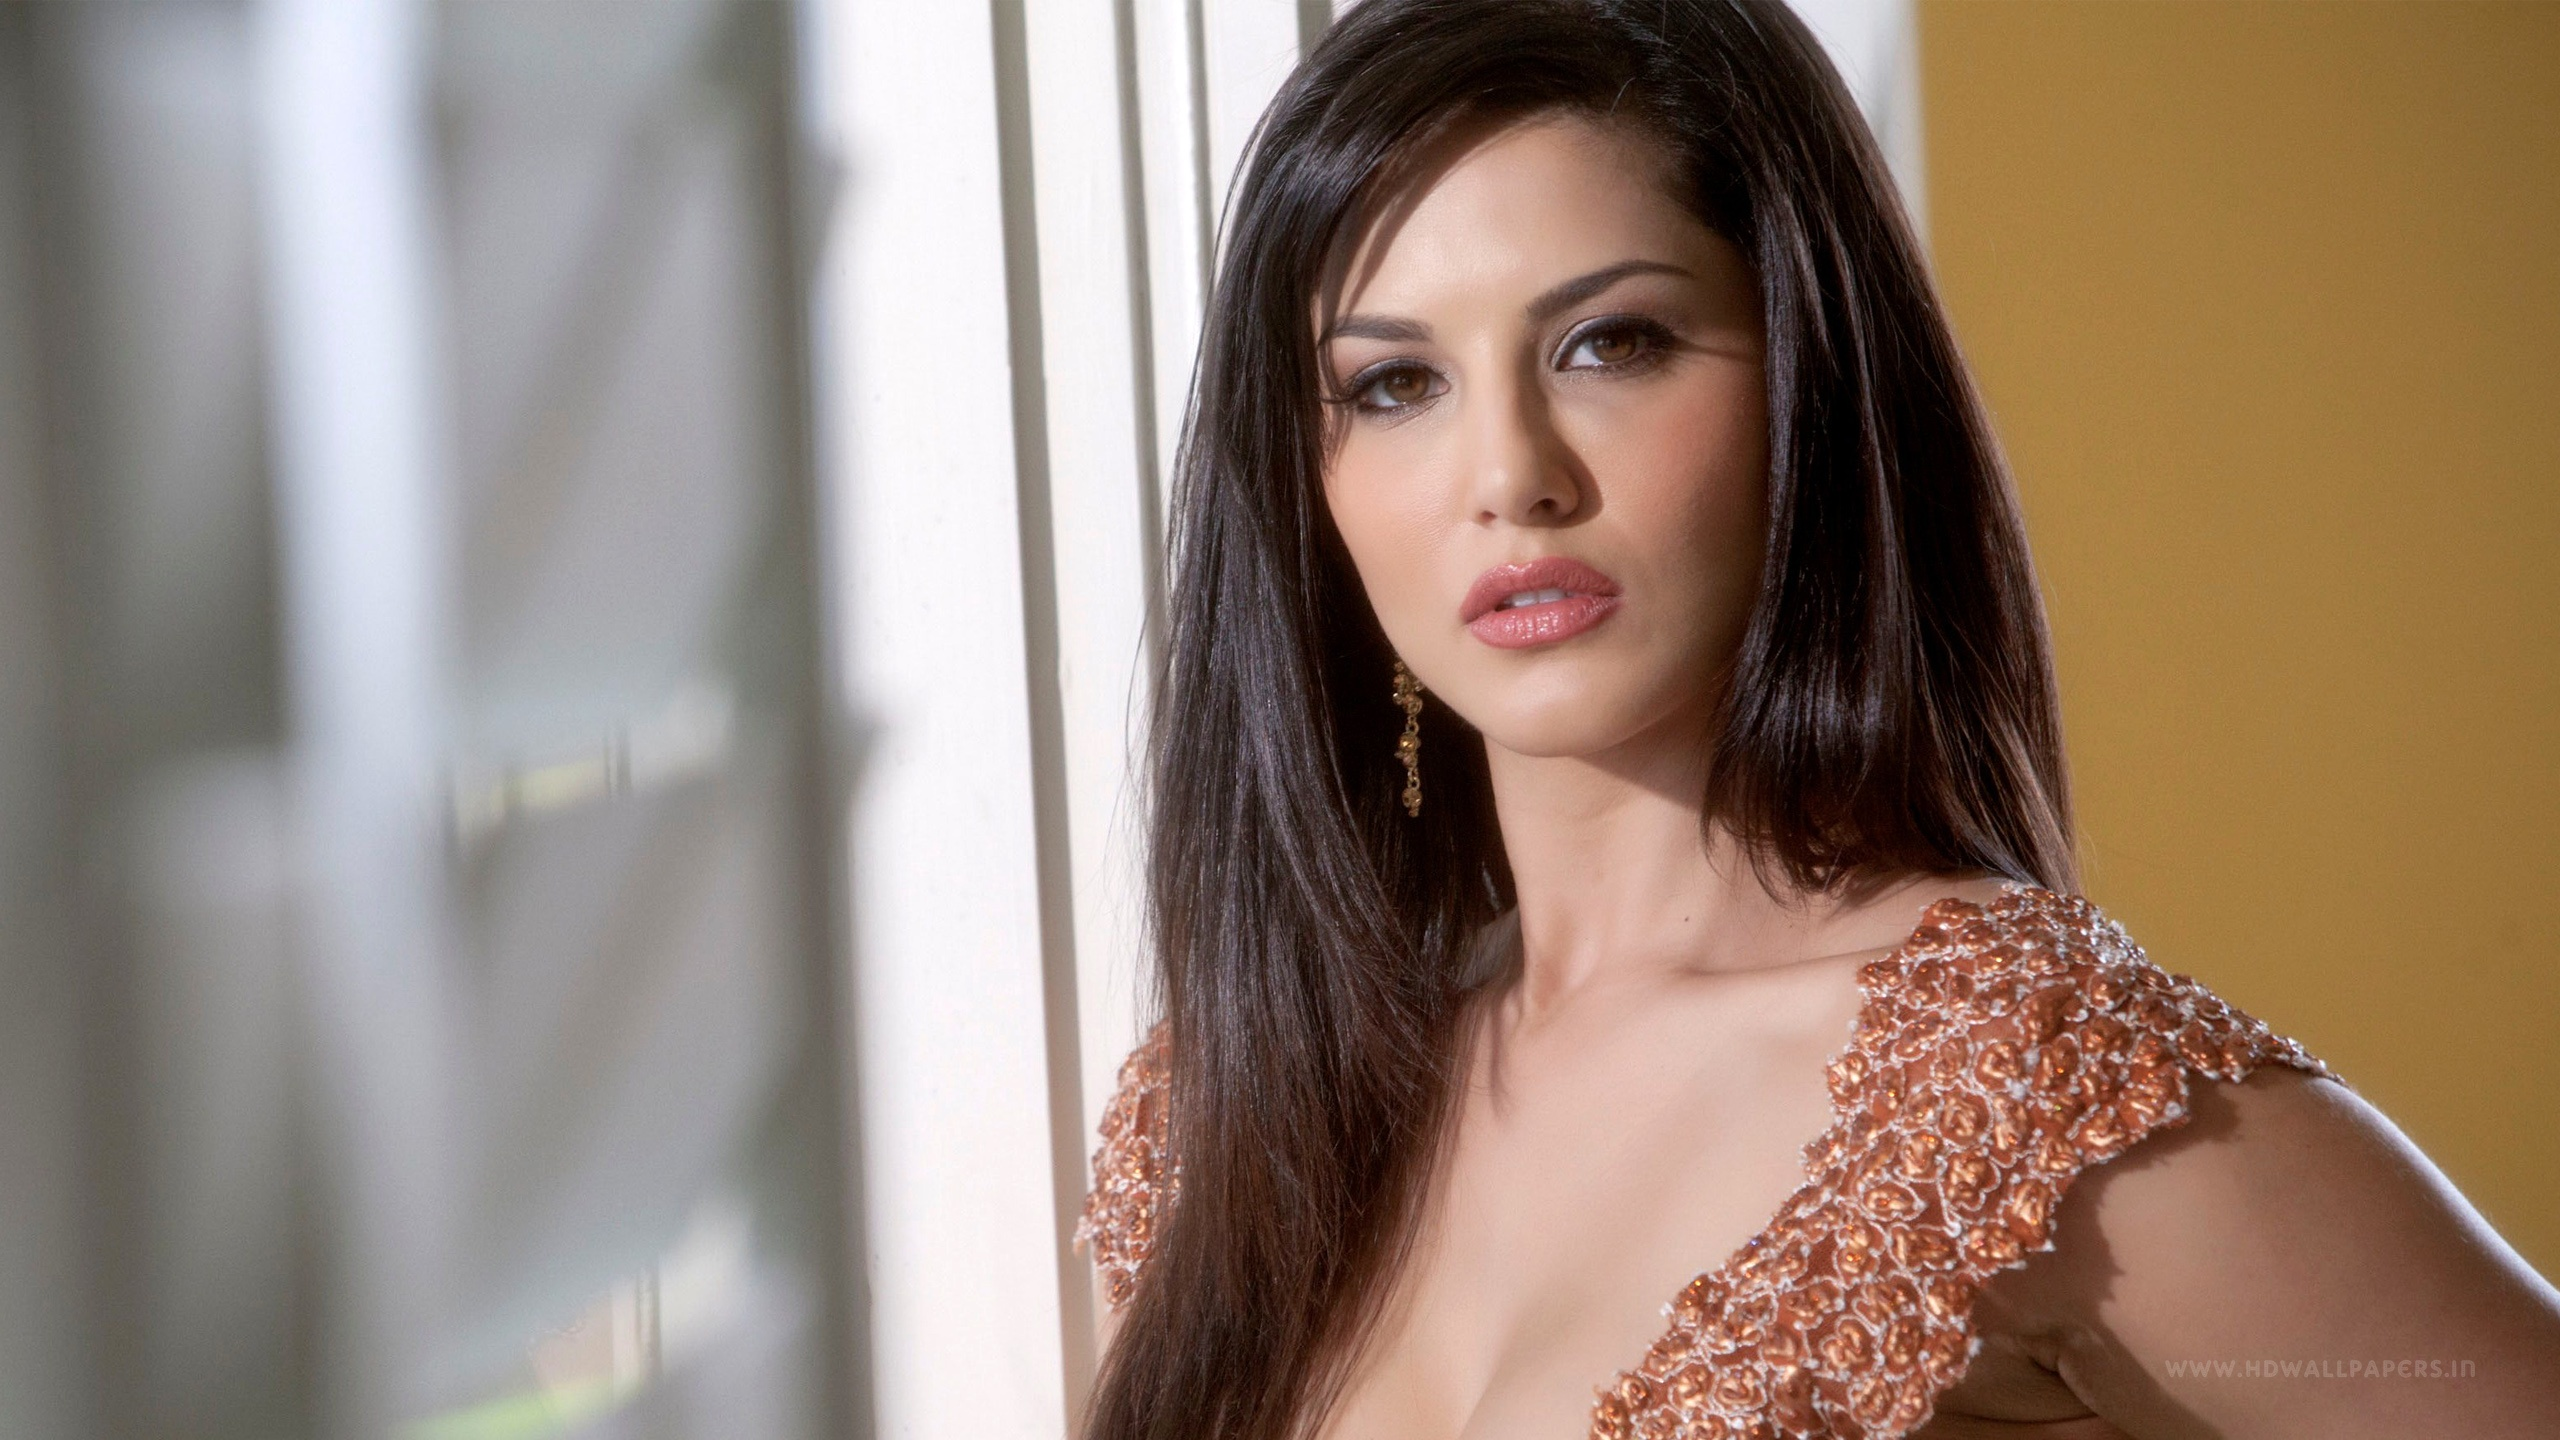 Sunny Leone Bollywood Actress Wallpapers In Jpg Format For Free Download